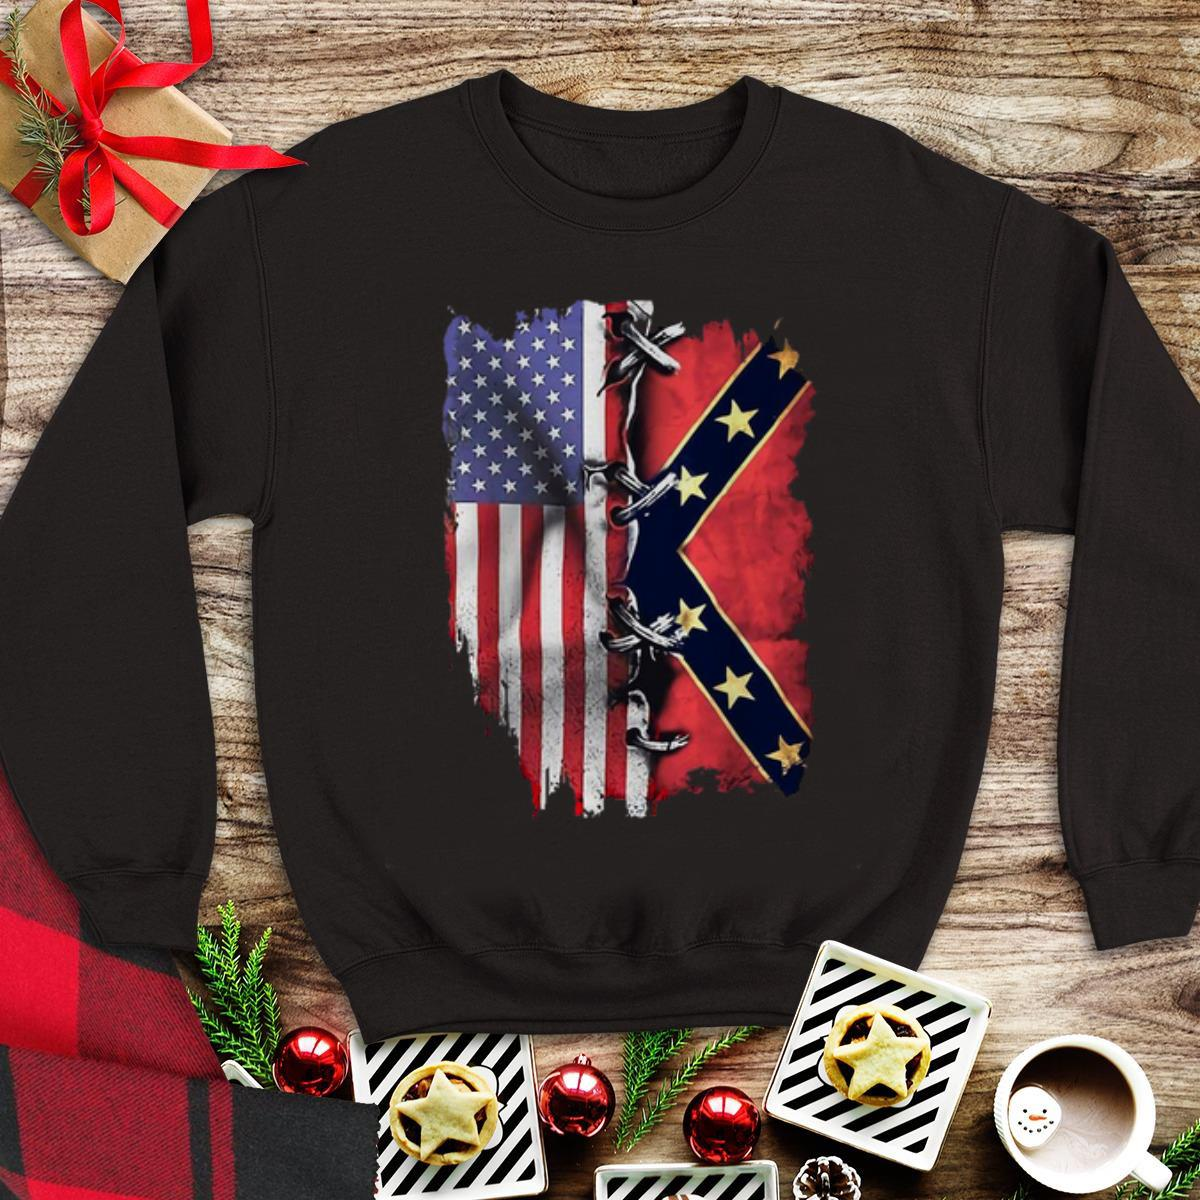 Awesome American Flag And Confederate Flag Shirt 1 1.jpg